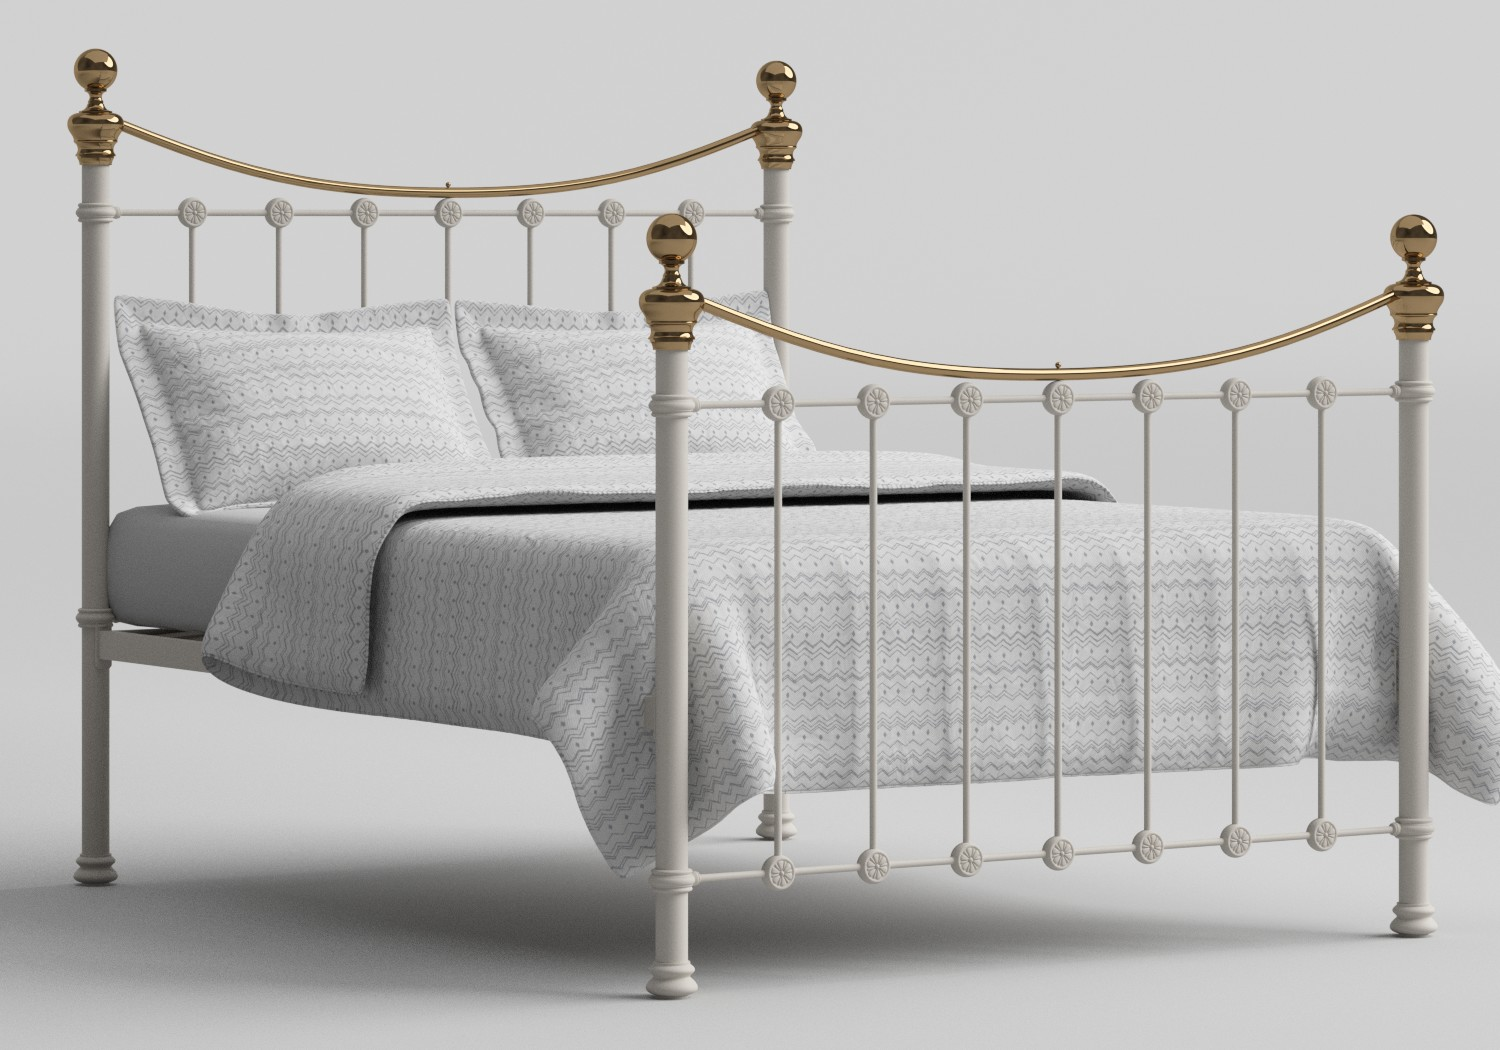 Selkirk Iron/Metal Bed in Glossy Ivory with Brass details shown with Juno 1 mattress